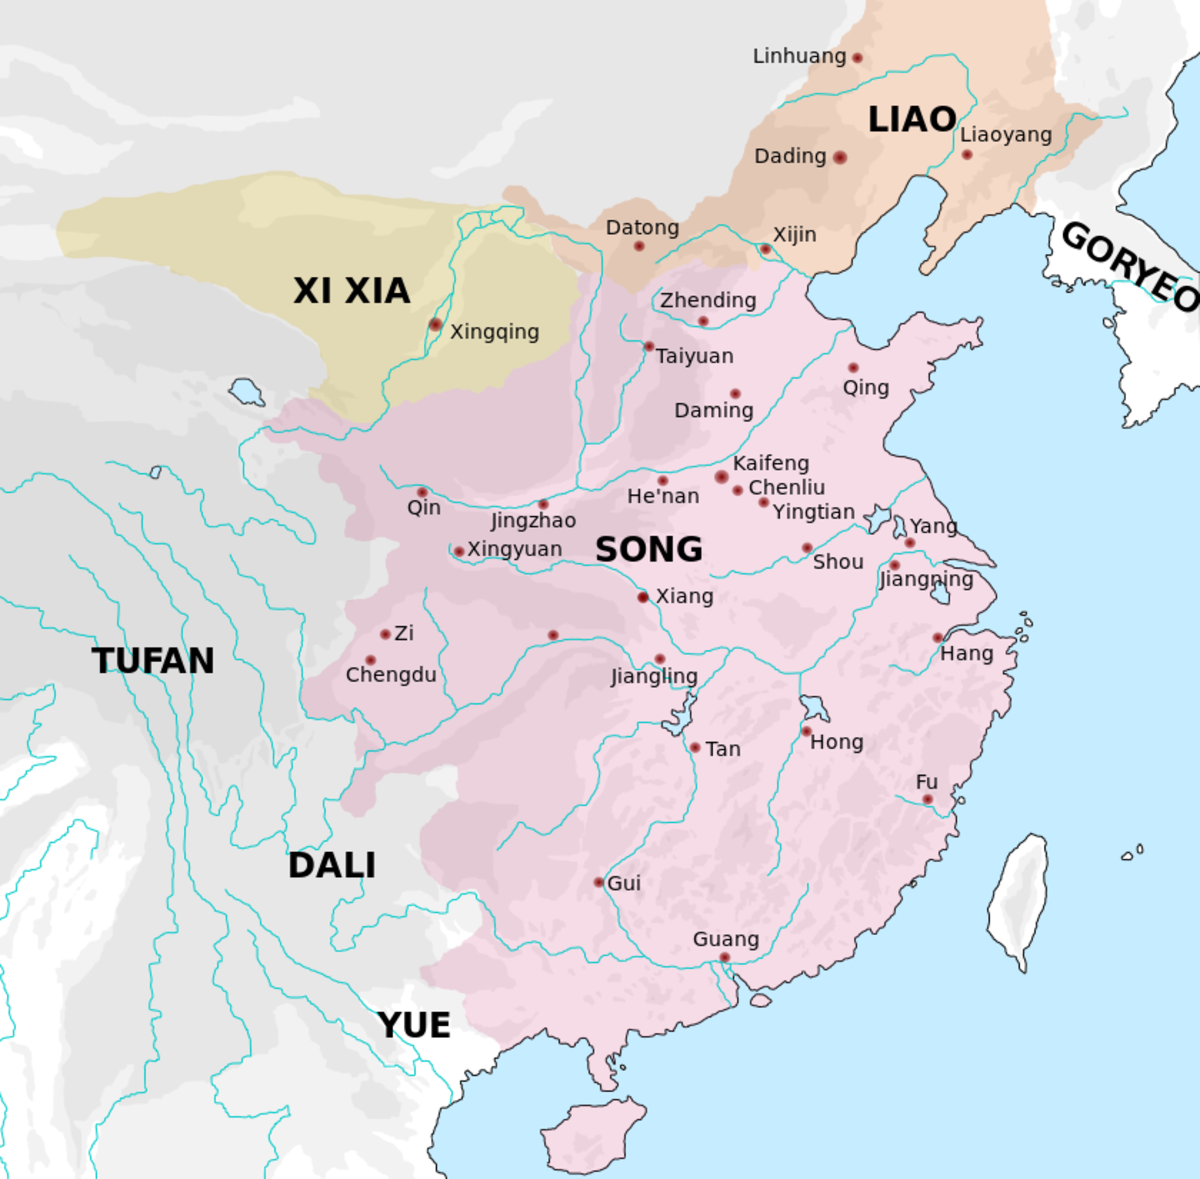 The Song state during this period, when it was in possession of Northern China. It was engaged in a long military standoff with its northern neighbors.